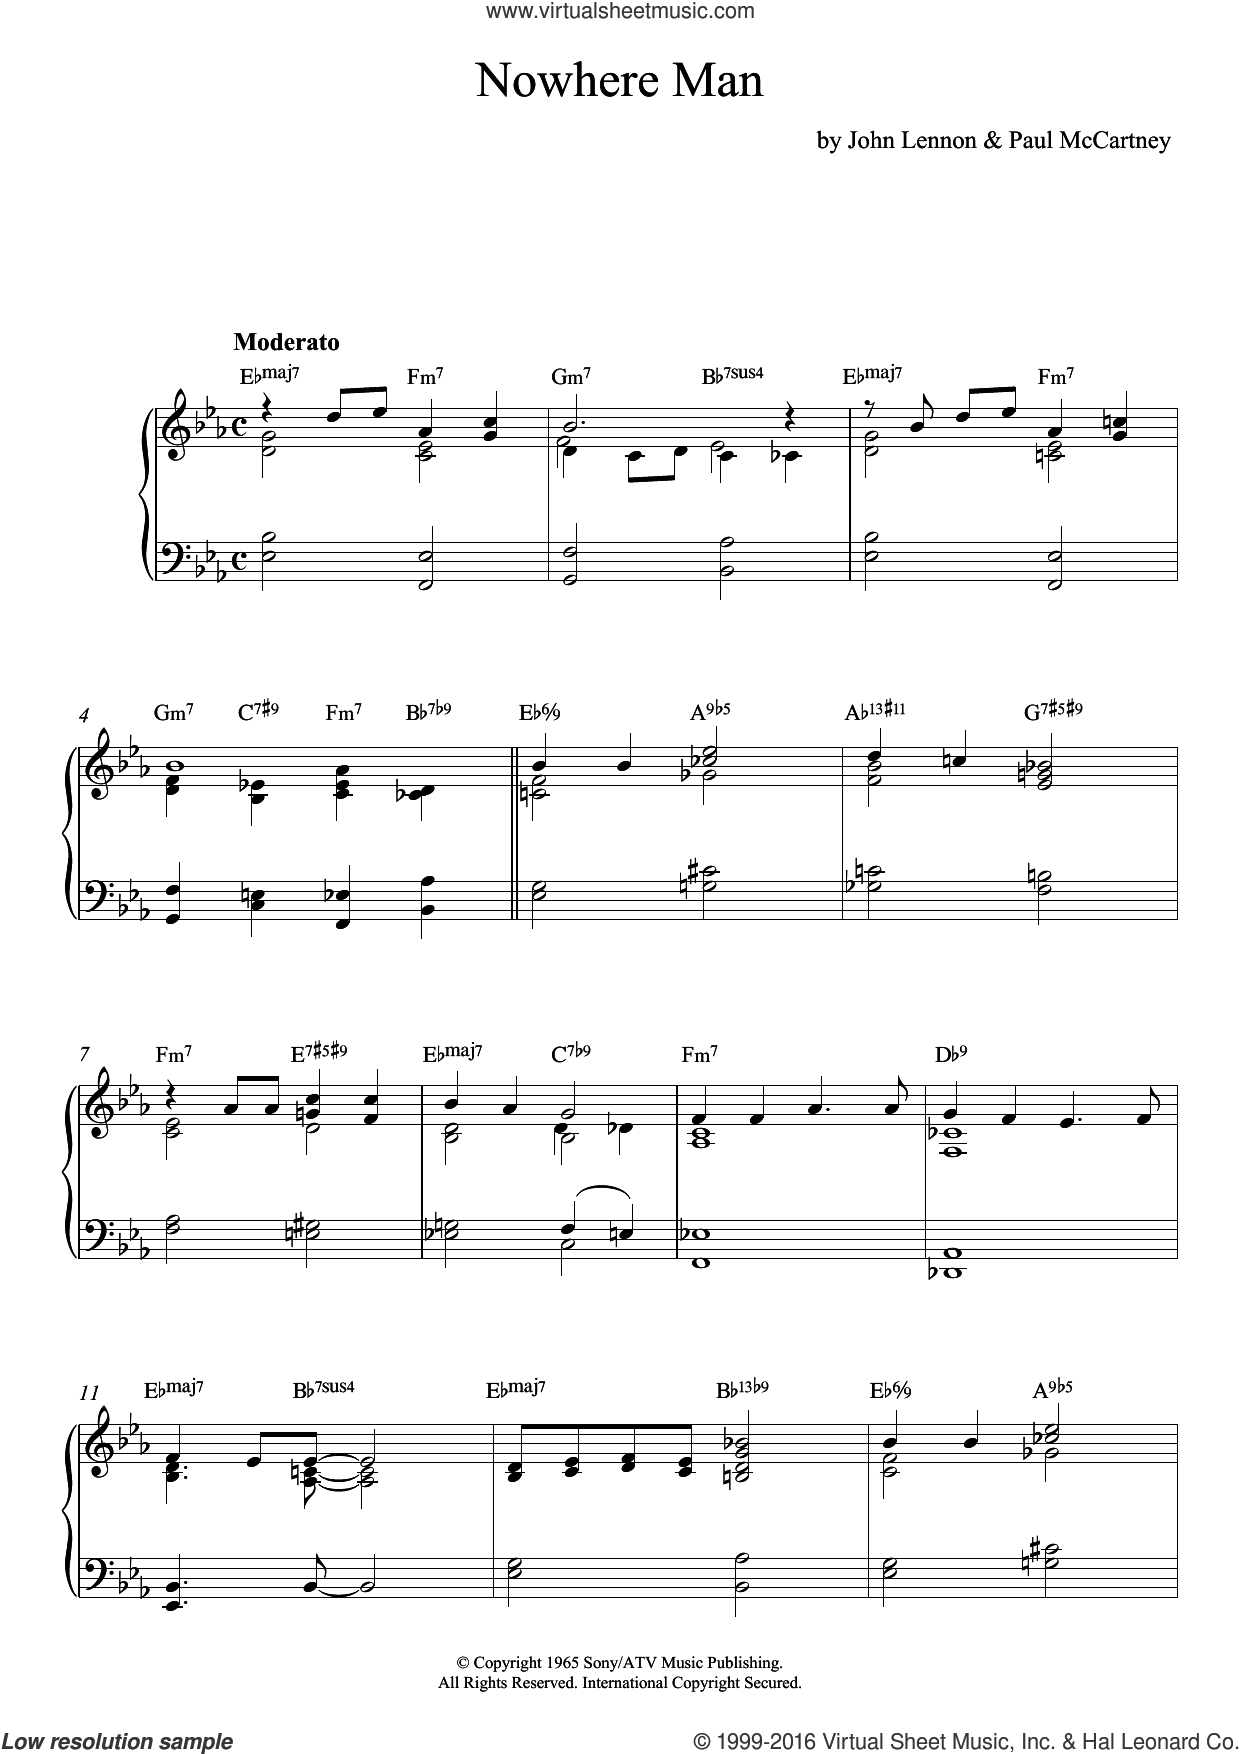 Nowhere Man (jazz version) sheet music for piano solo by The Beatles, John Lennon and Paul McCartney, intermediate skill level